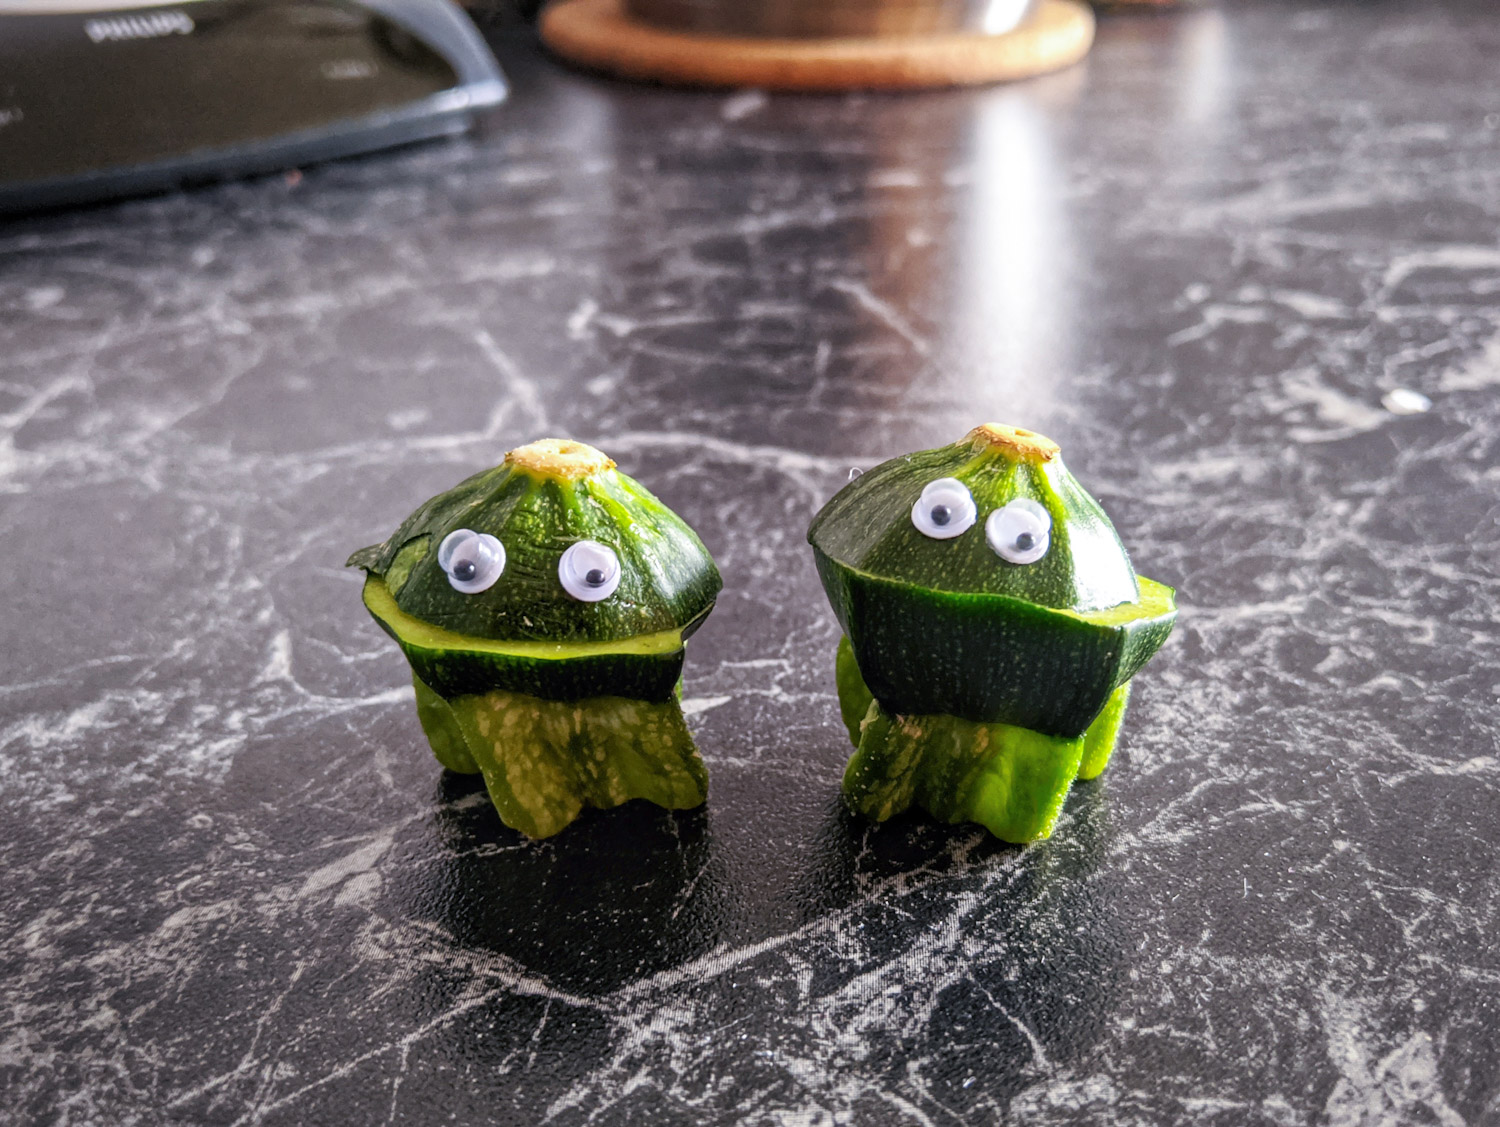 Chini and Gette Zucchini Courgette Googly Eyes @snaepshots by @fraenk